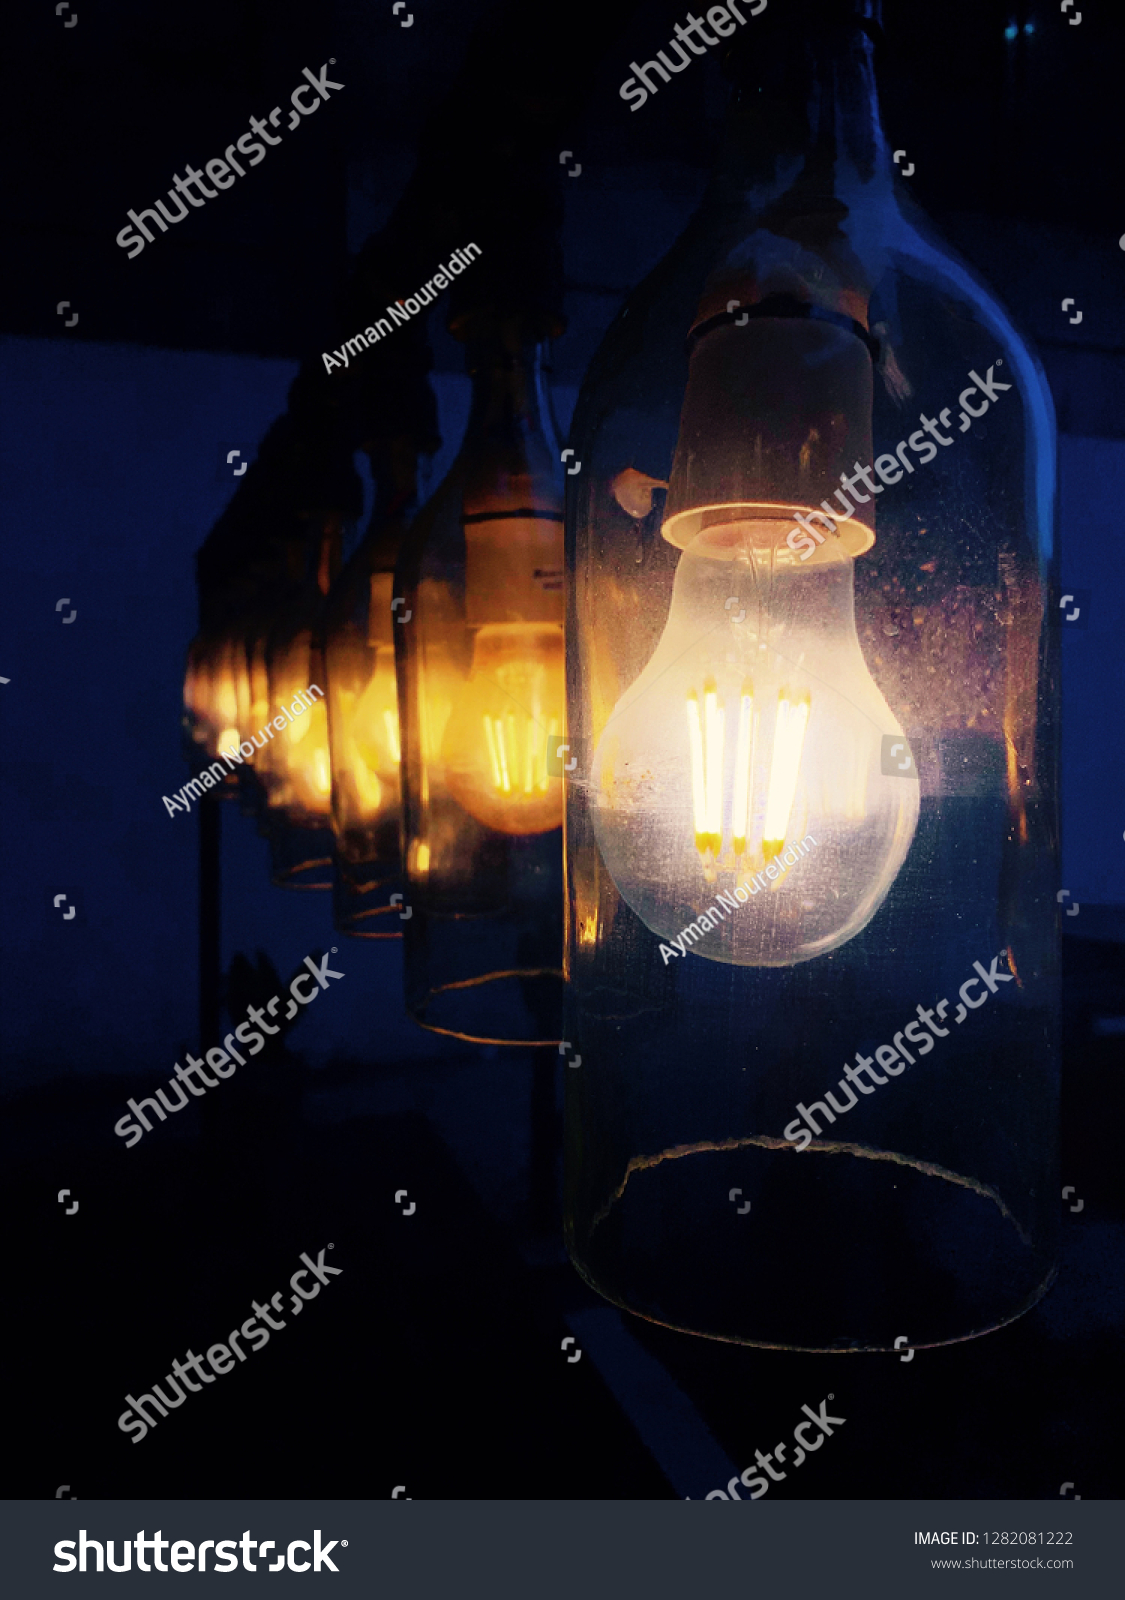 Set of hanging white and orange glass bulb lights in a dark room